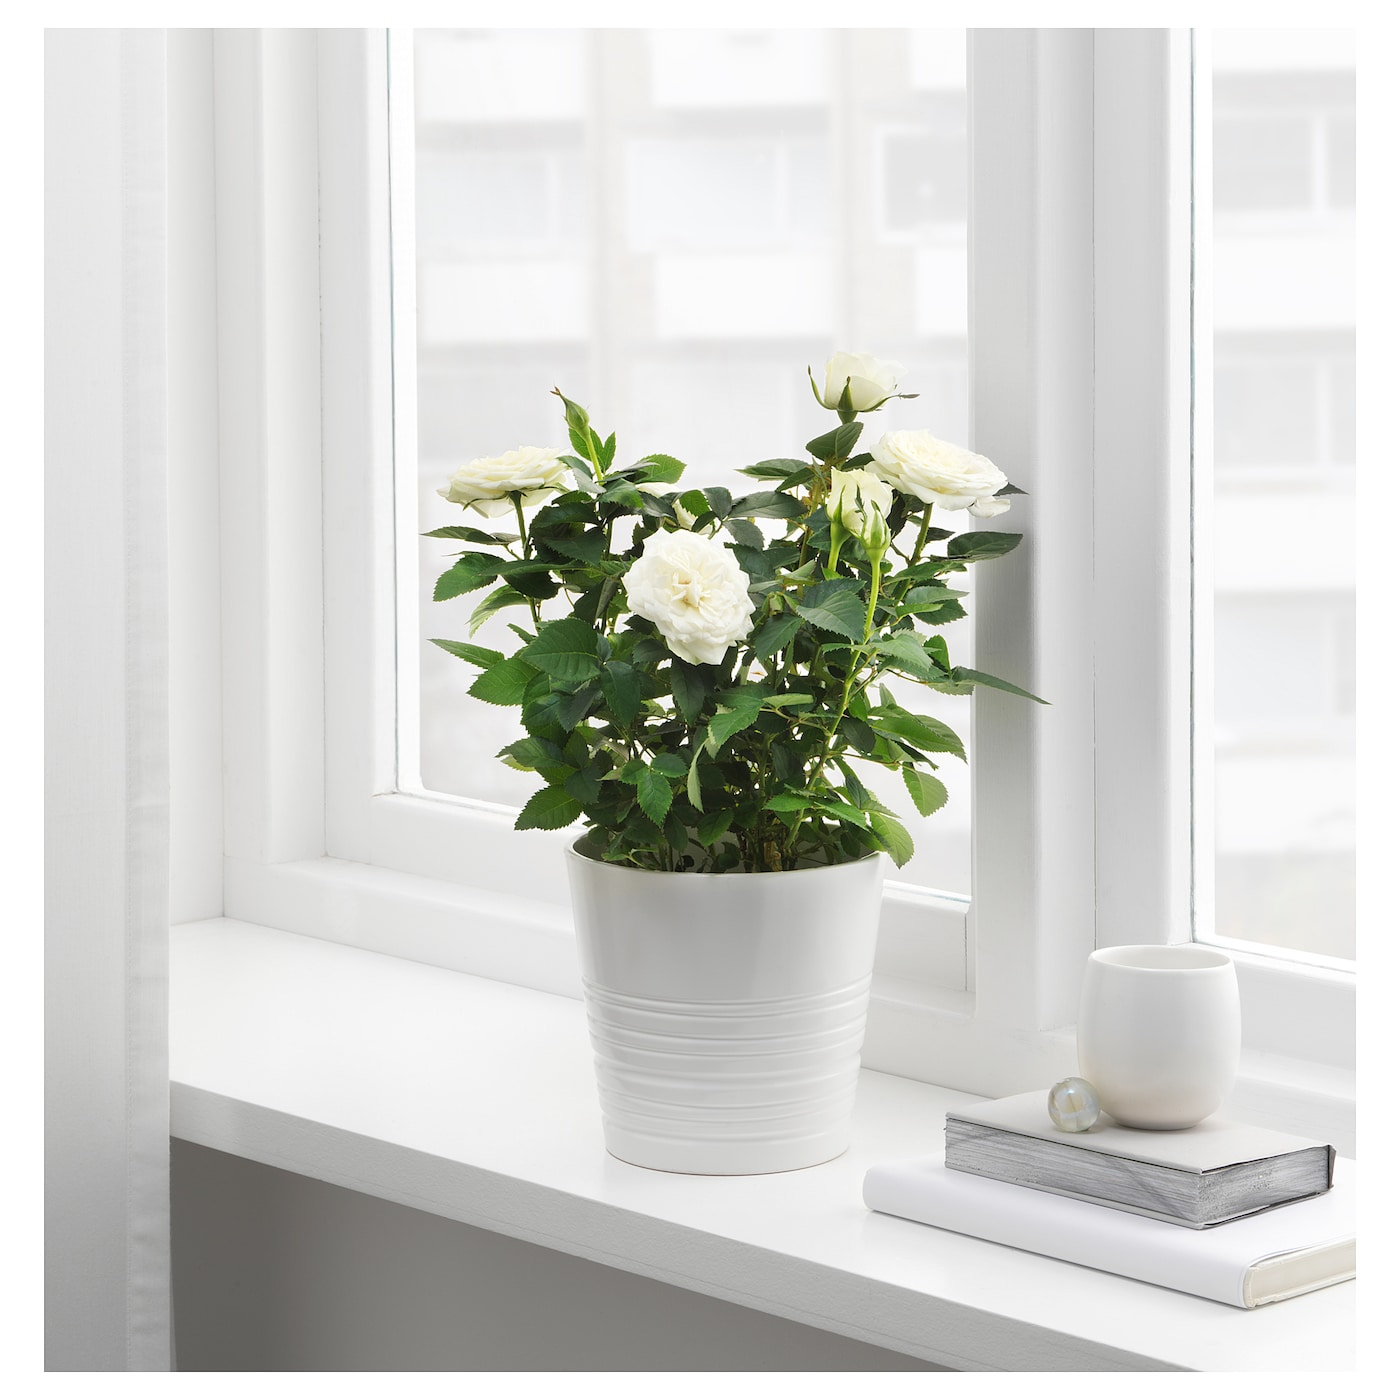 IKEA ROSA potted plant